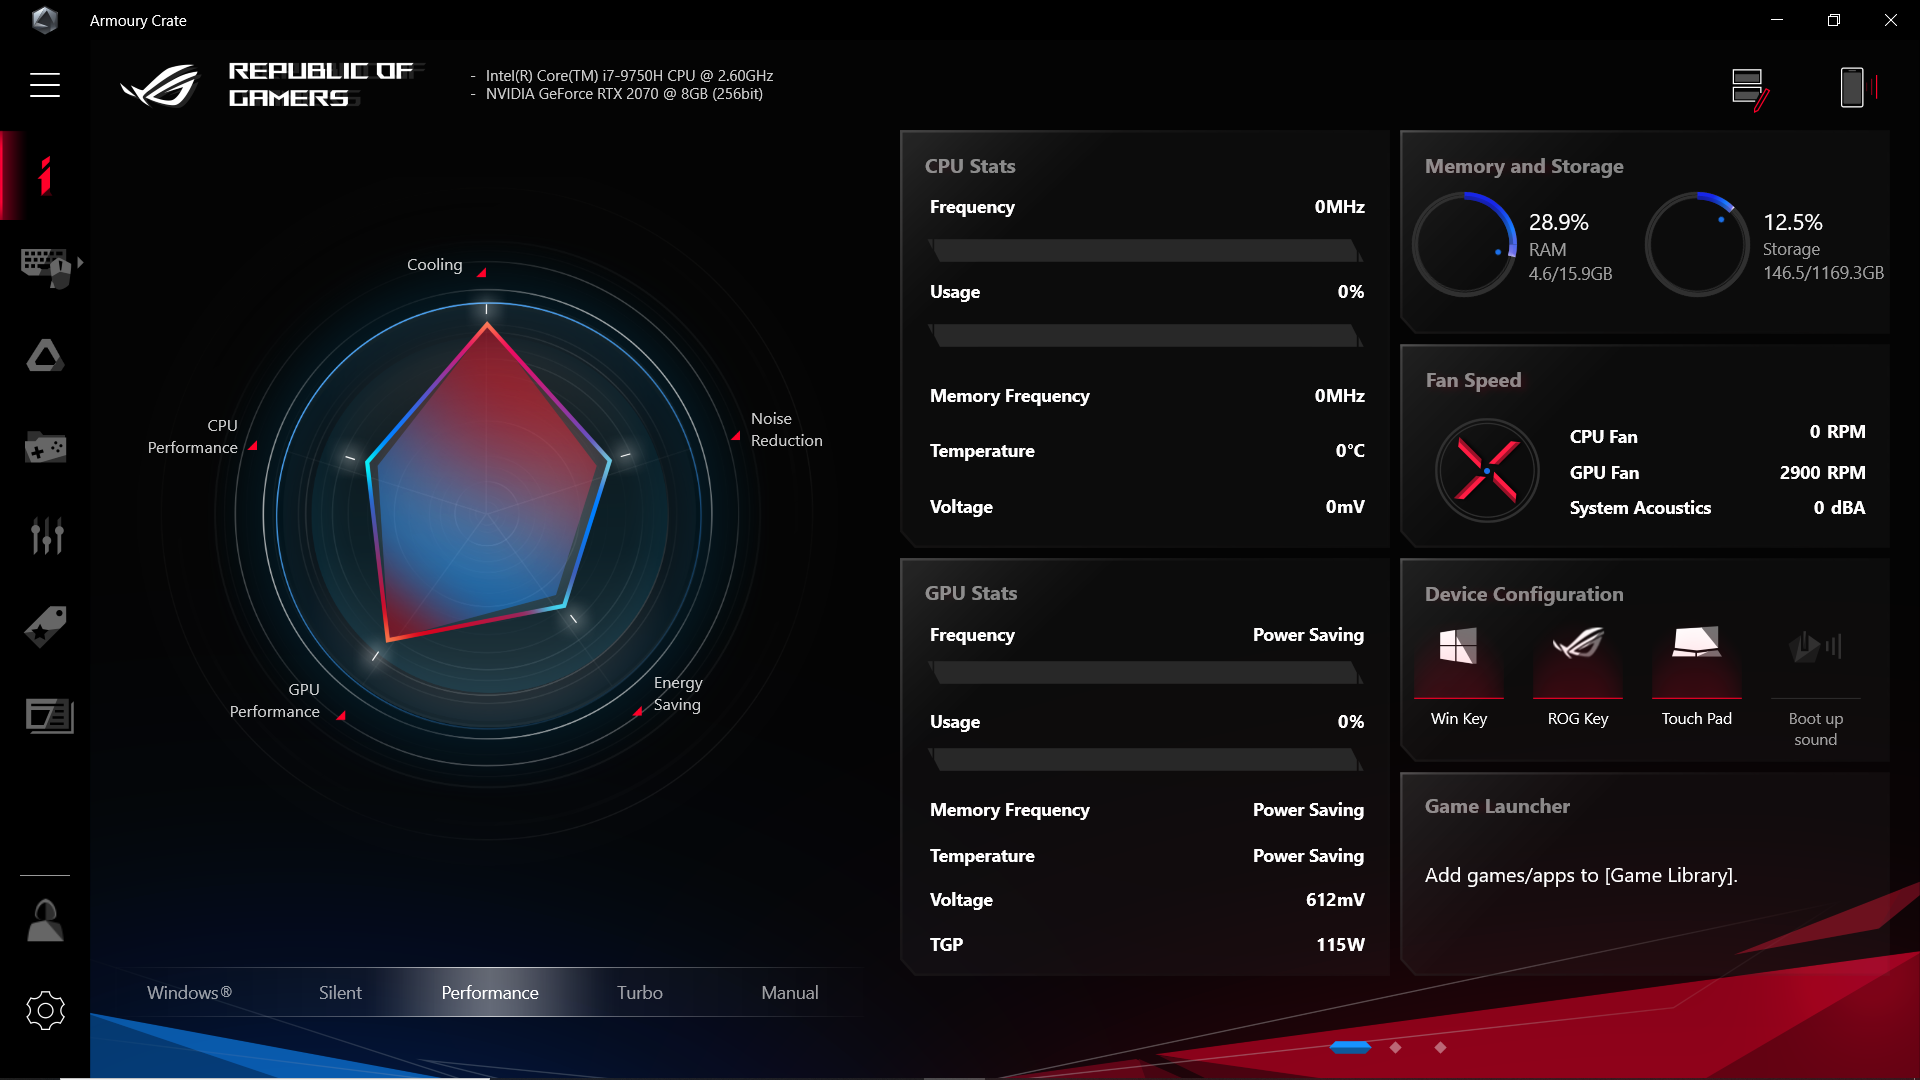 ASUS Armory Crate not showing CPU stats - Troubleshooting ...